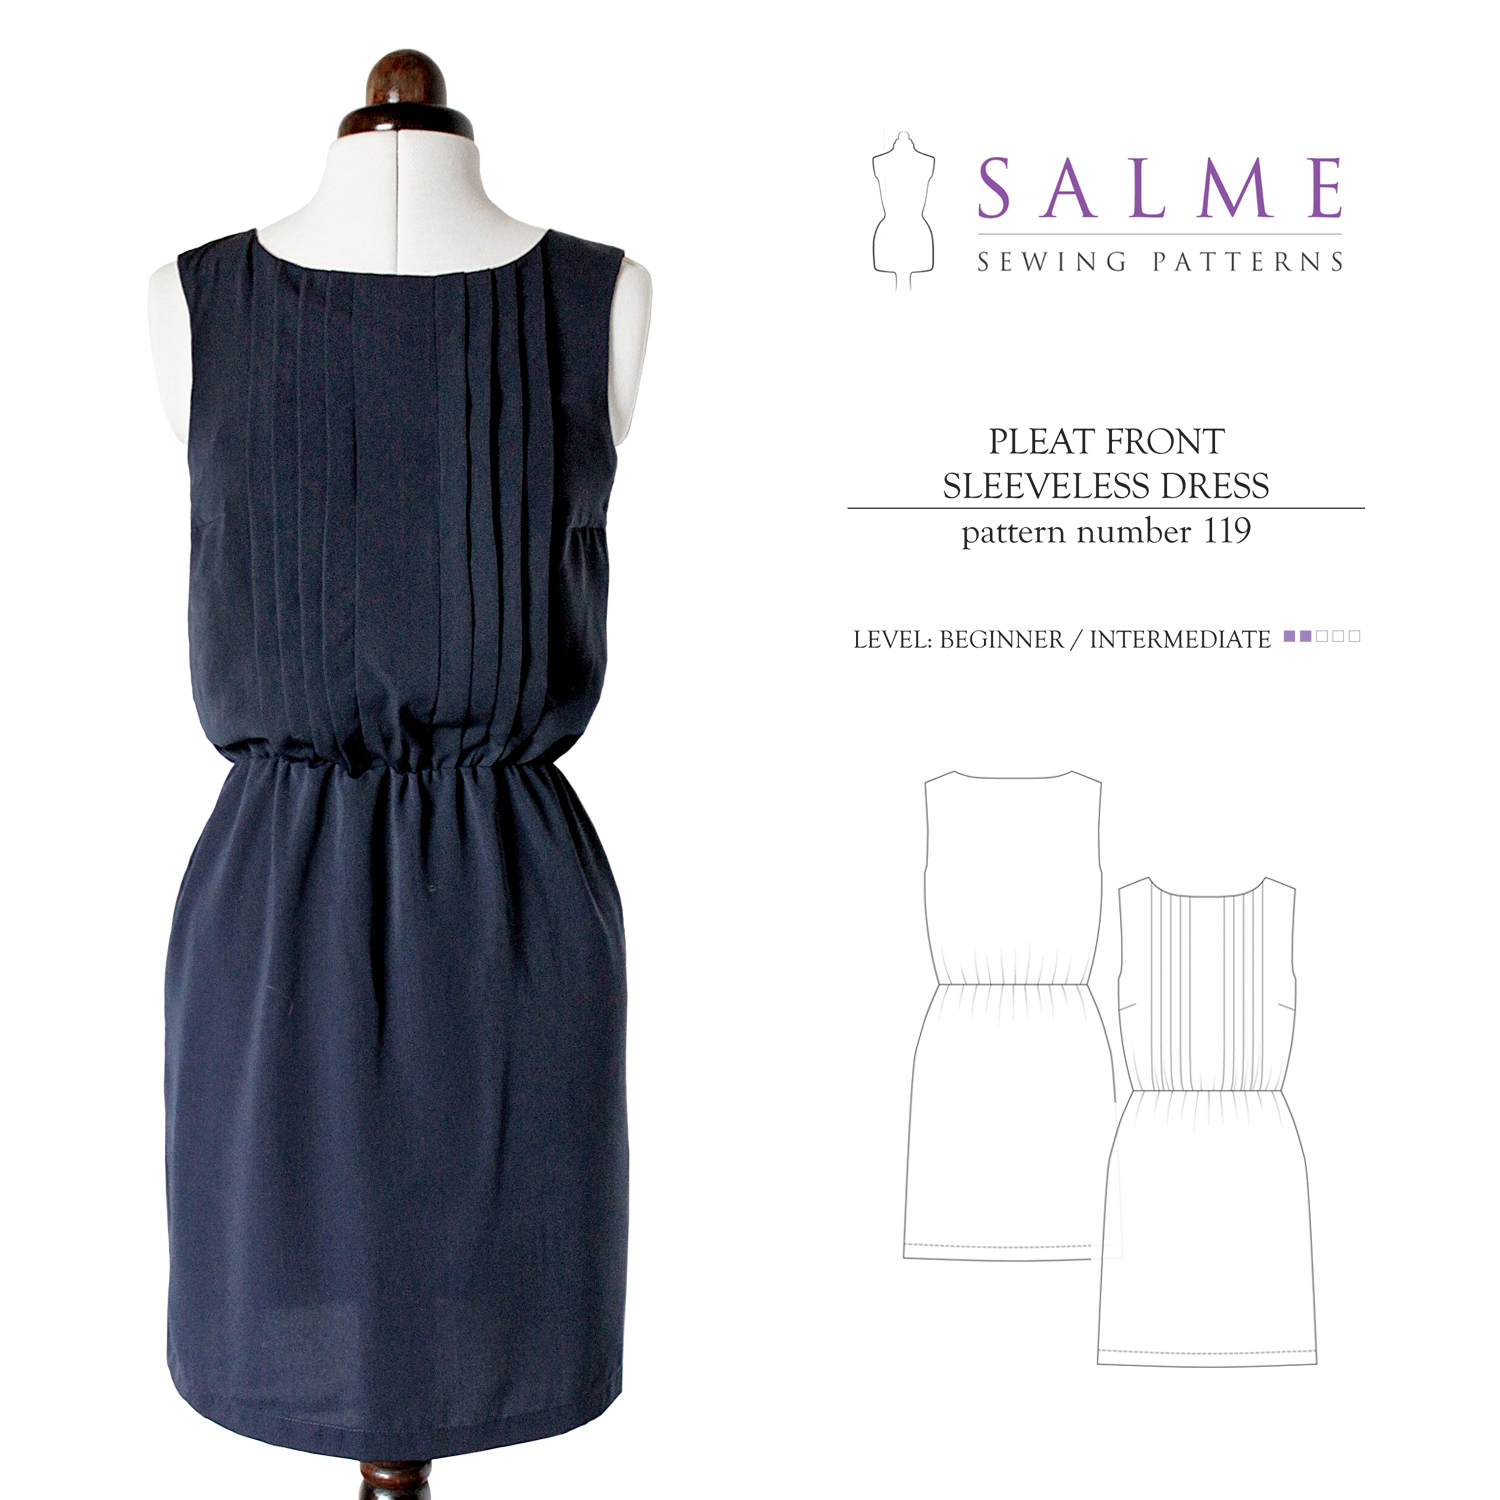 Salme Sewing Patterns Pleat Front Sleeveless Dress Downloadable Pattern 119